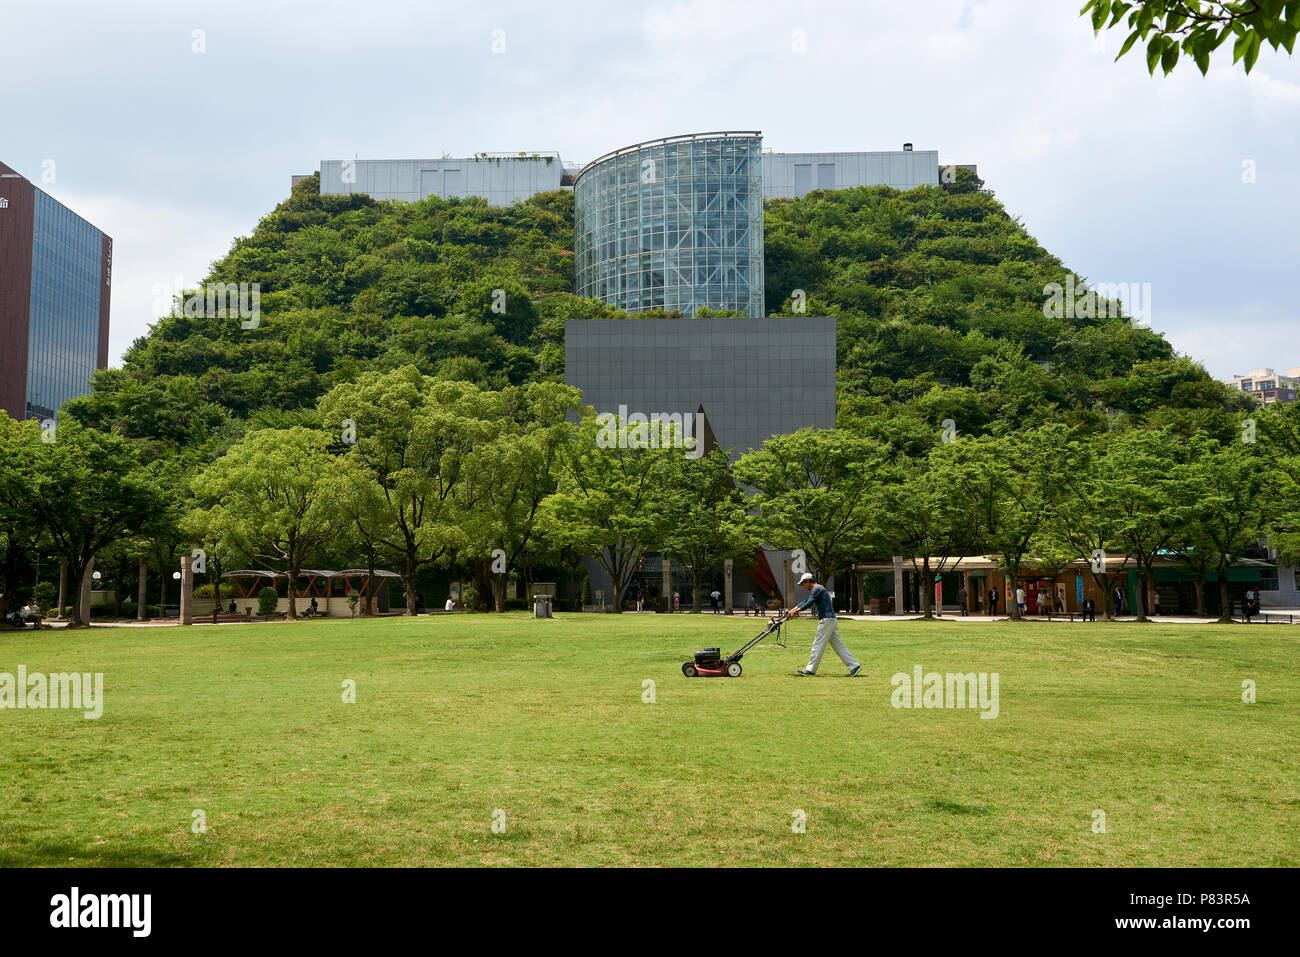 A man mows the lawn in Tenjin Central Park in front of the eco-friendly ACROS building in Fukuoka, Japan. Stock Photo